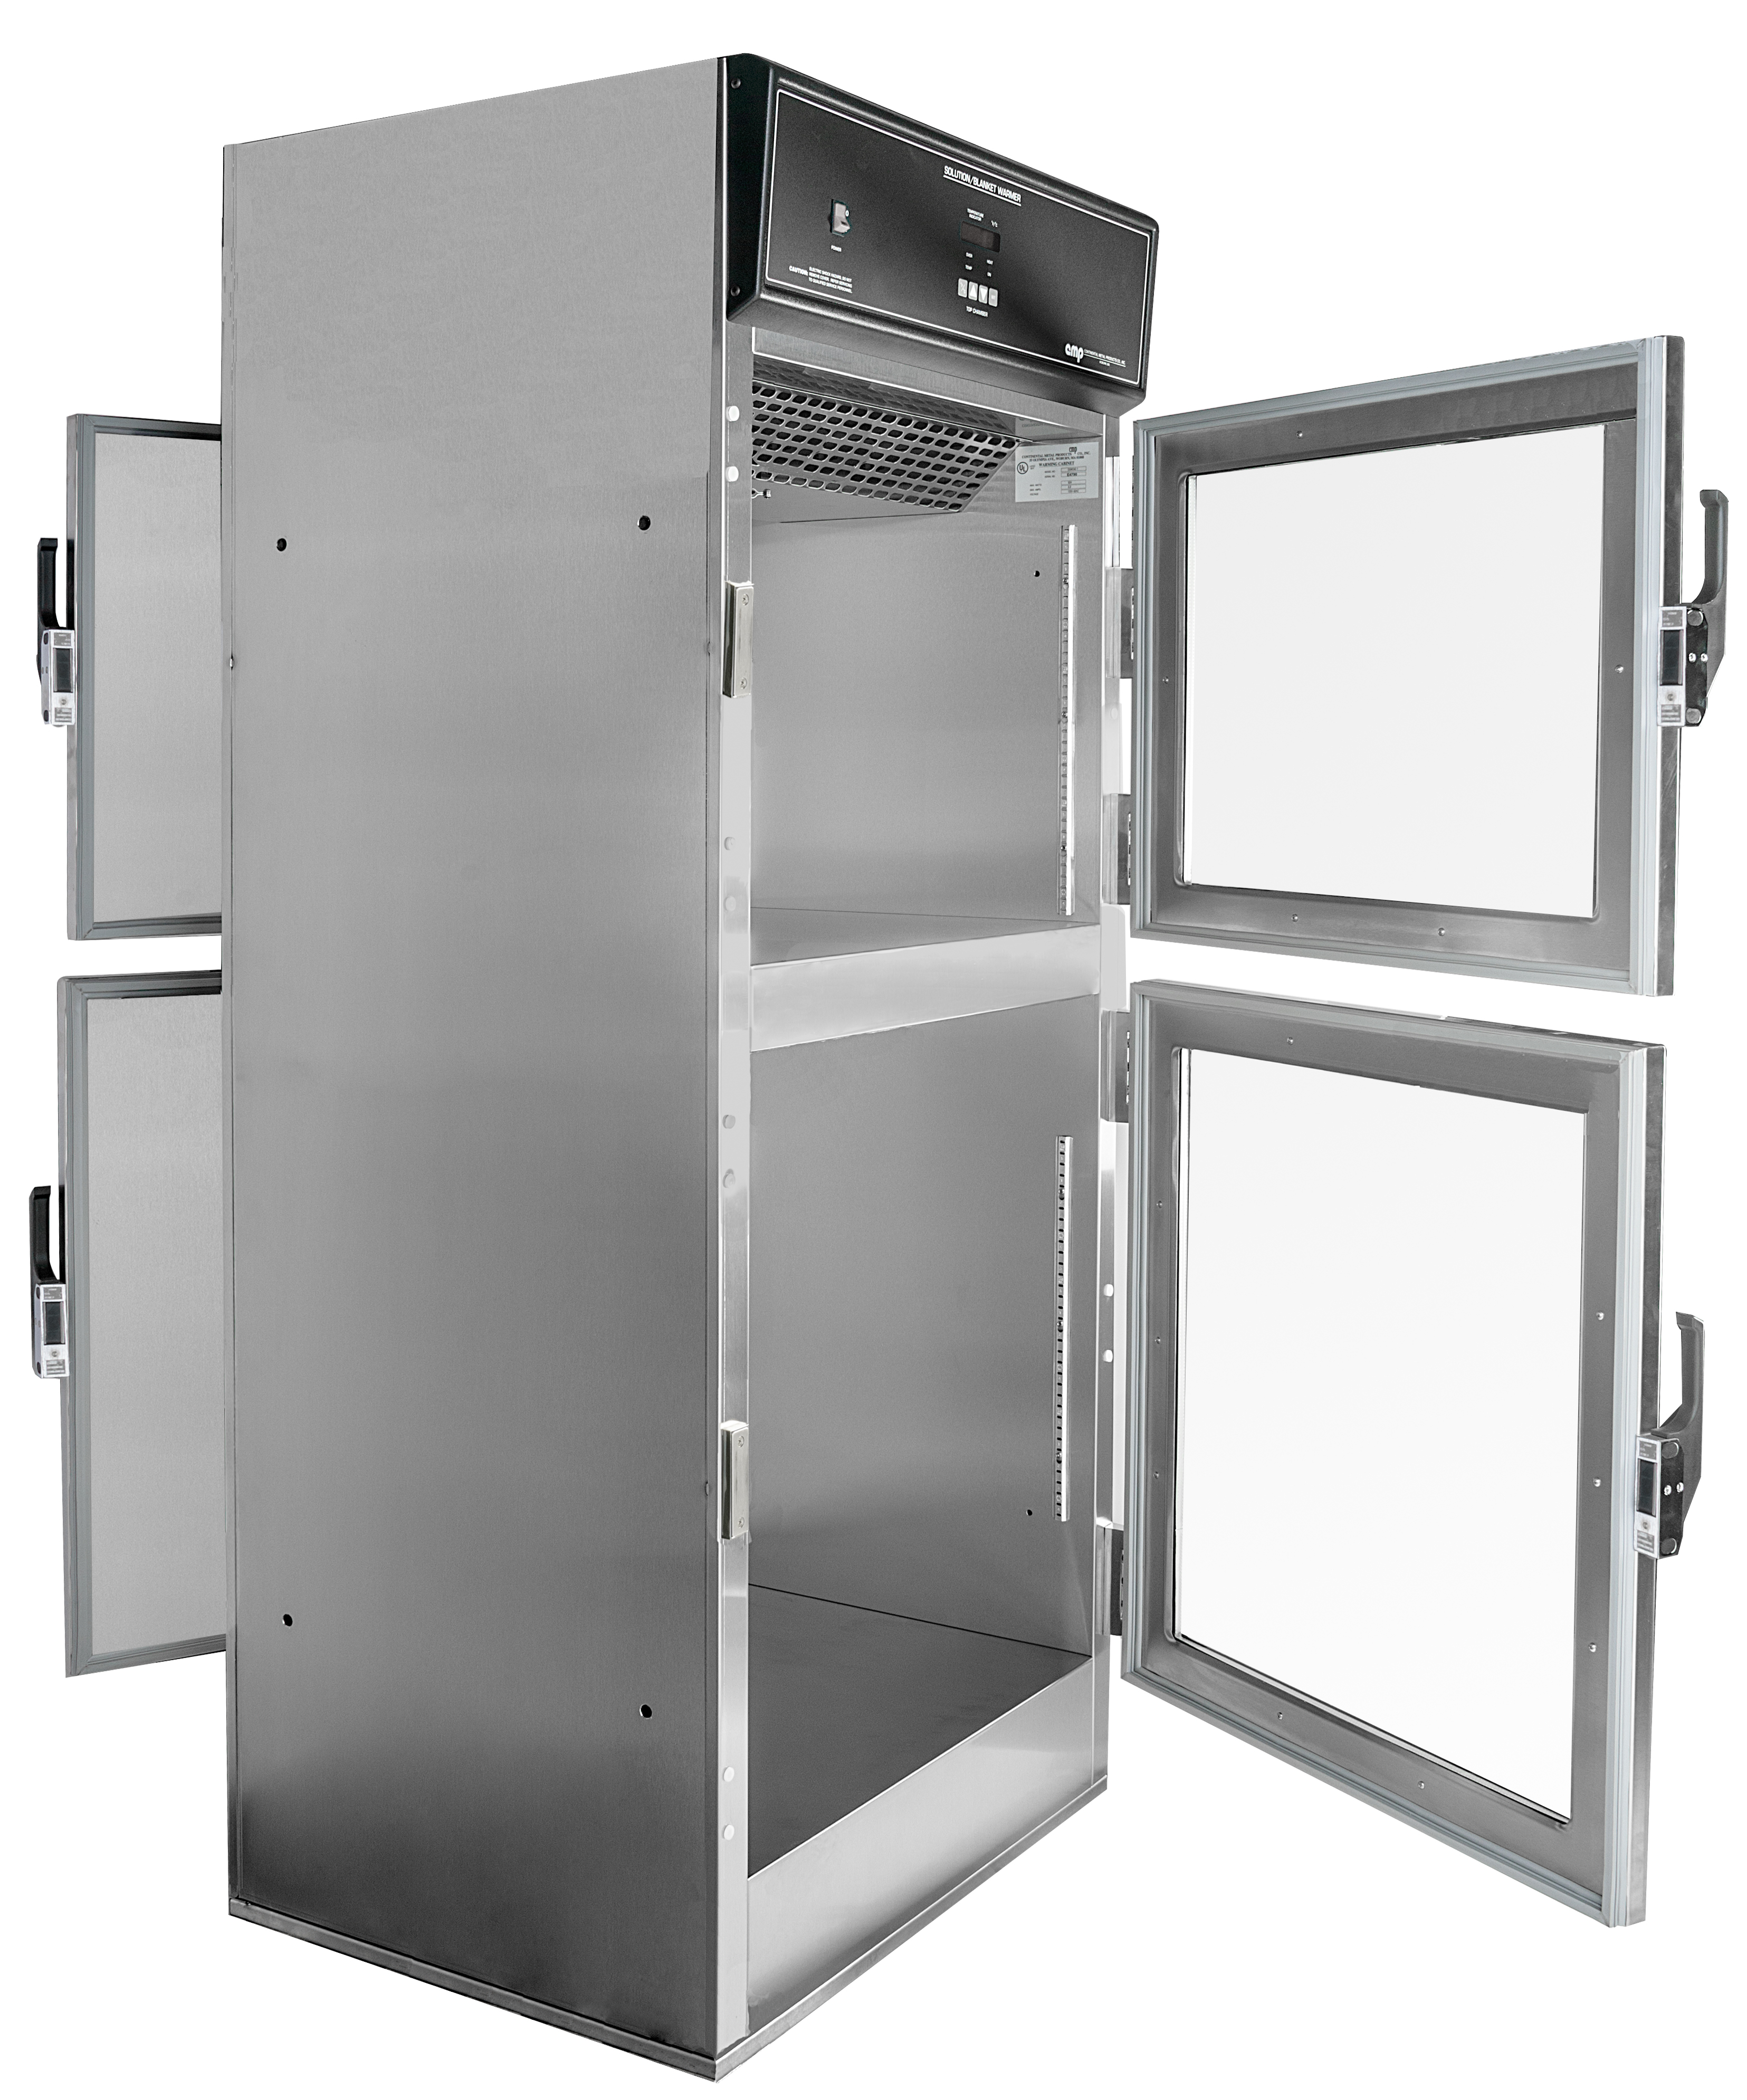 Pass Through Warming Cabinets Continental Metal Products Interlock Wiring Diagram 4 Doors Cabinet For Operating Rooms Hospital Blankets And Solutions Can Be Passed